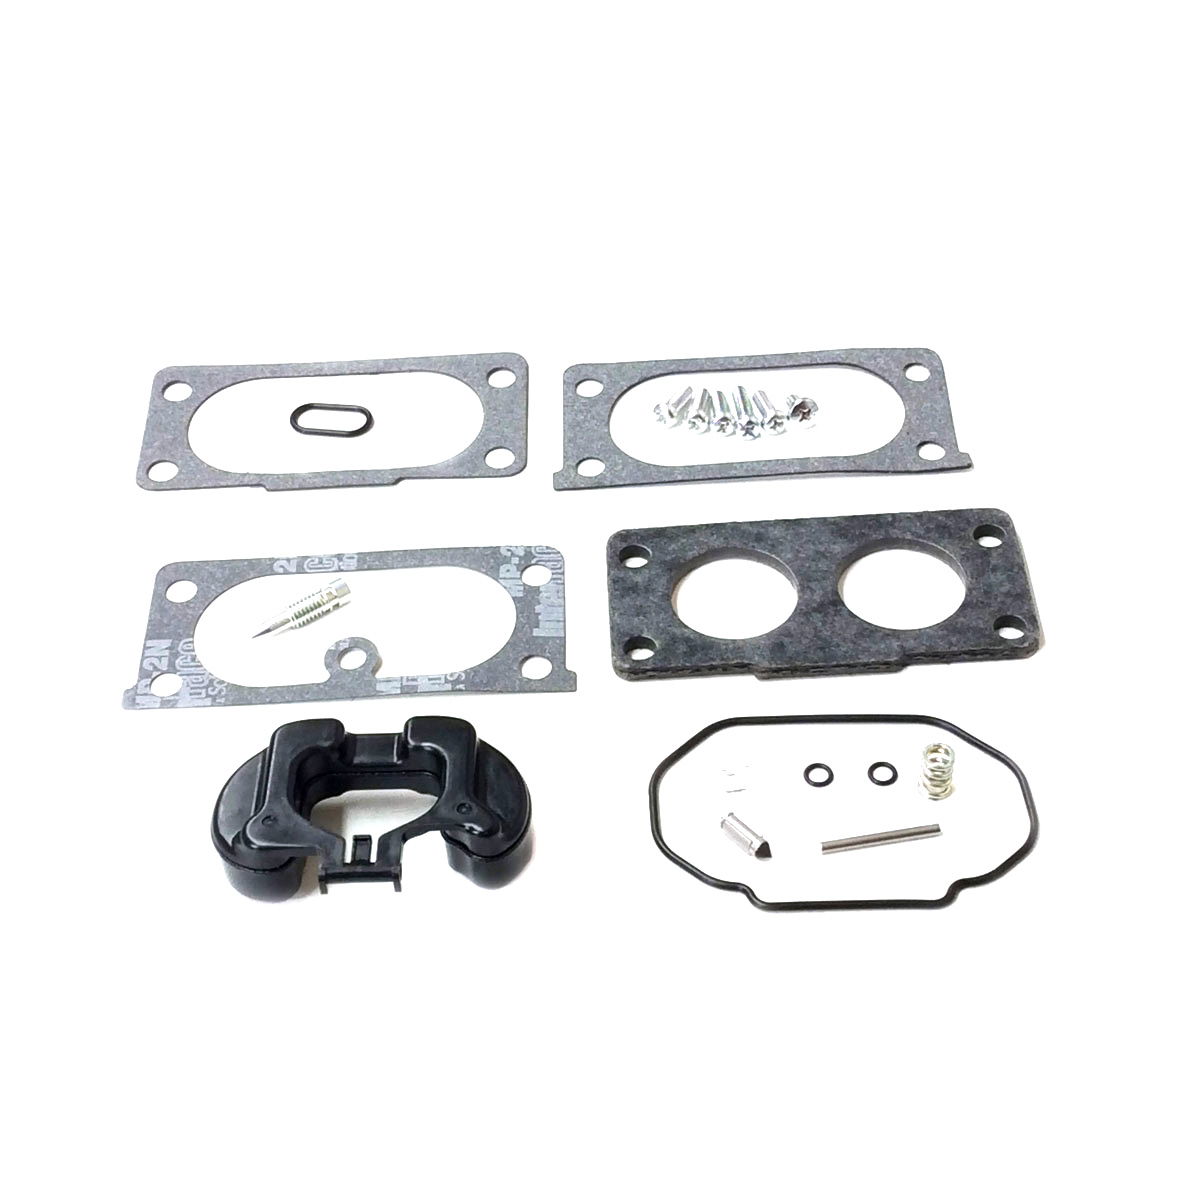 Kohler Overhaul Repair Kit 24 757 51 S